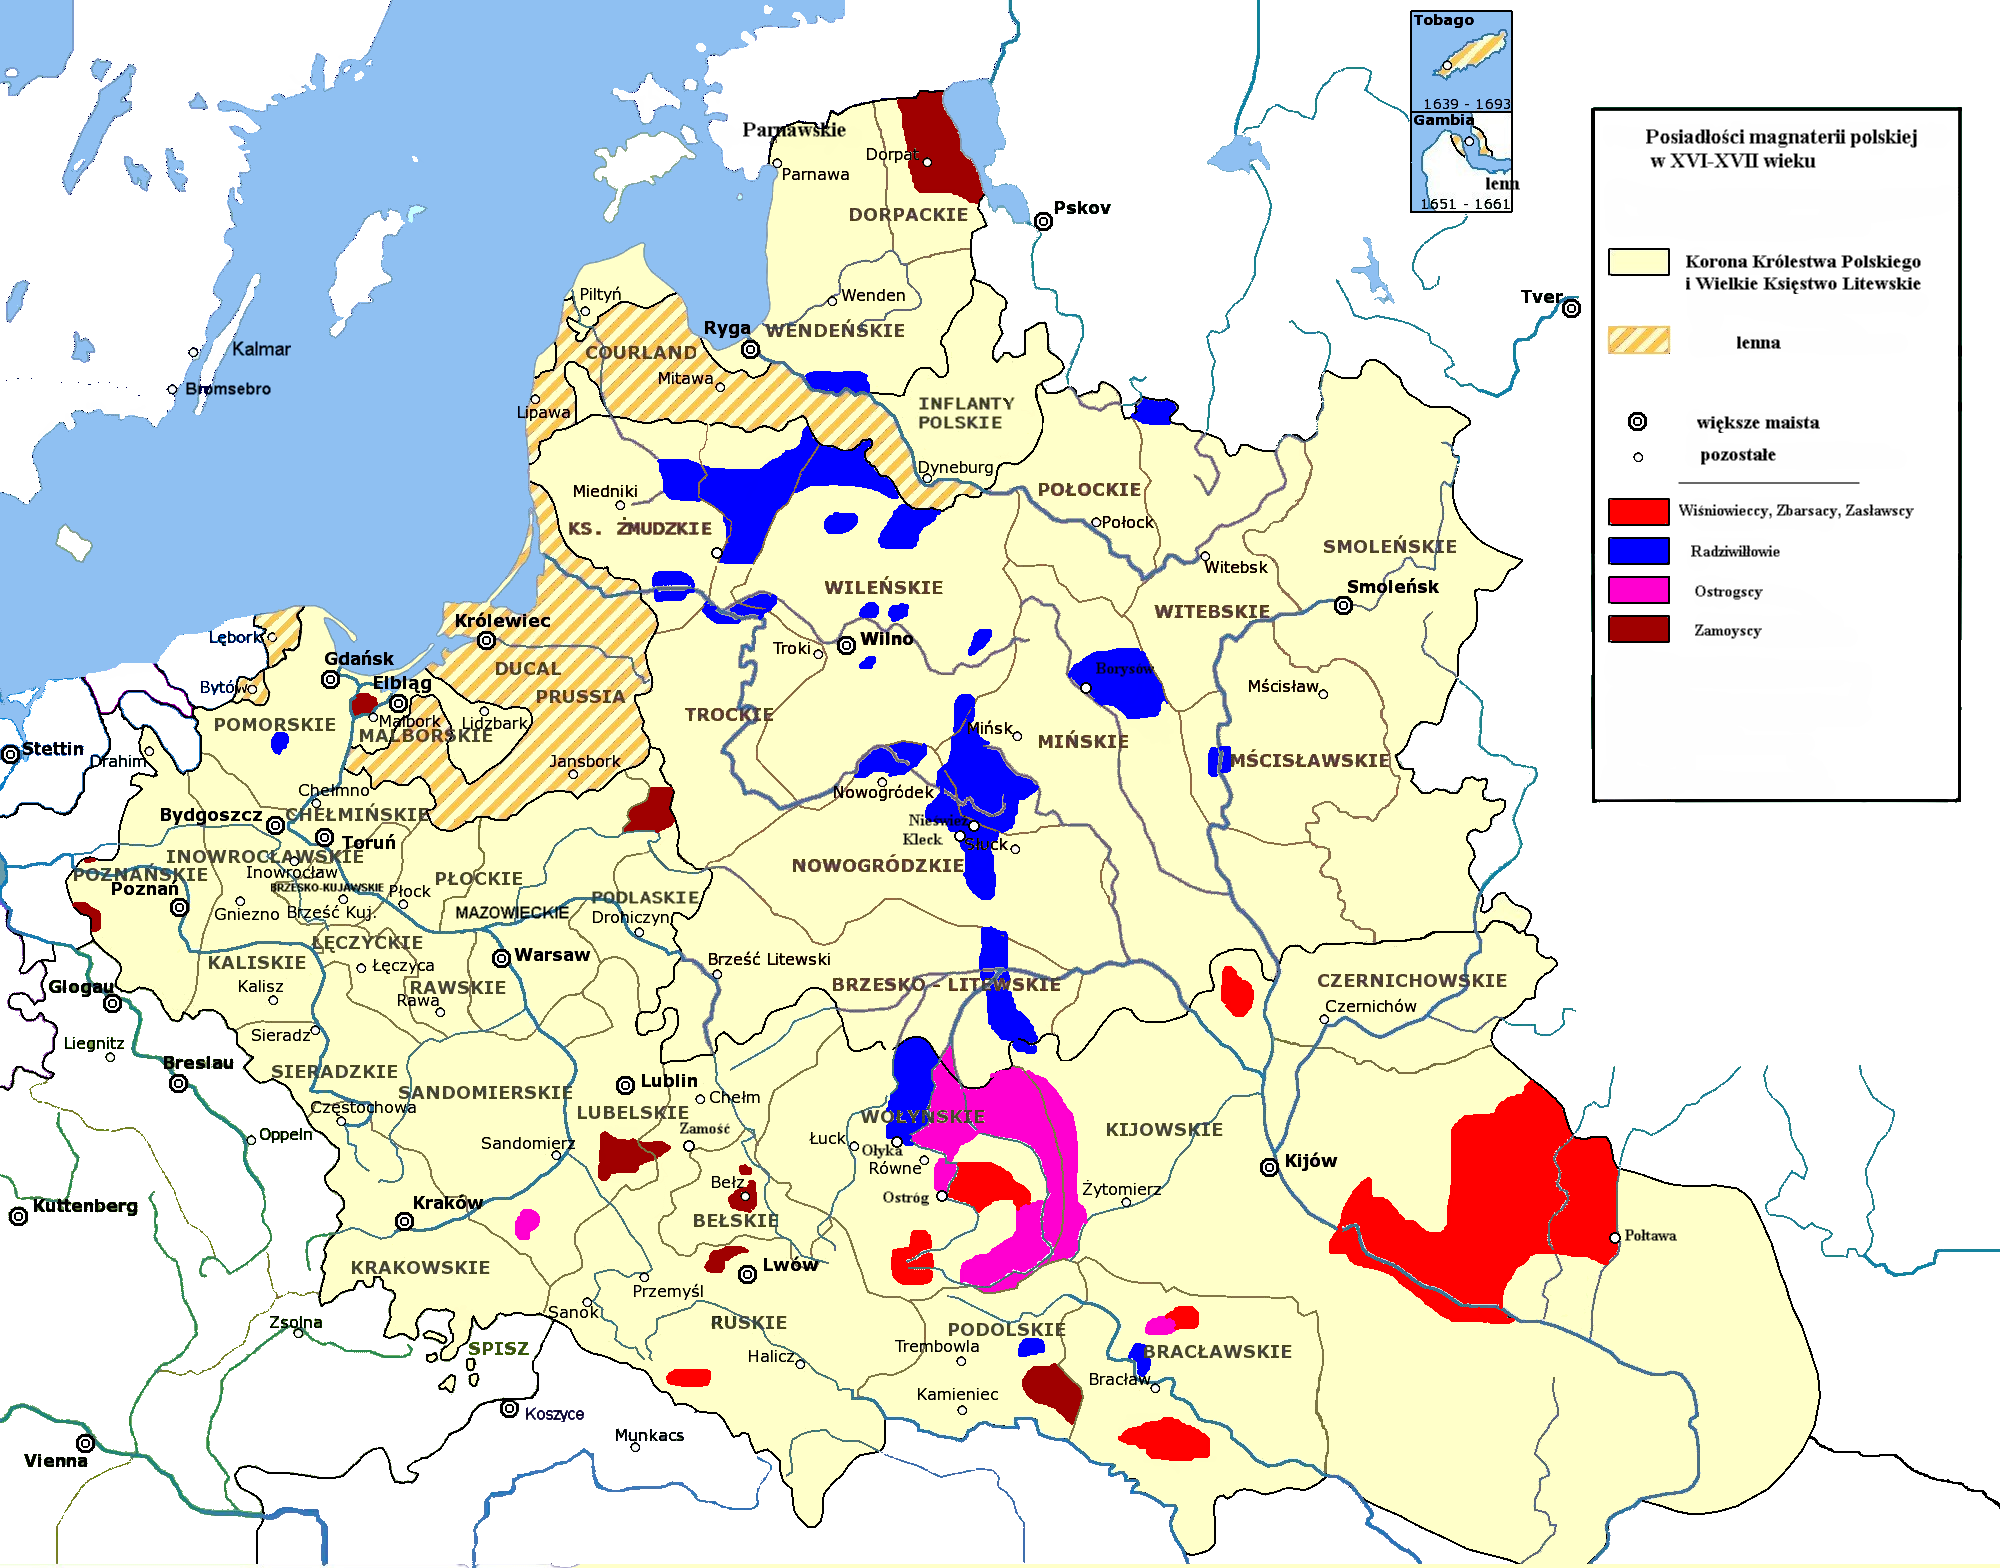 Properties of some Magnates in the Polish Lithuanian Commonwealth